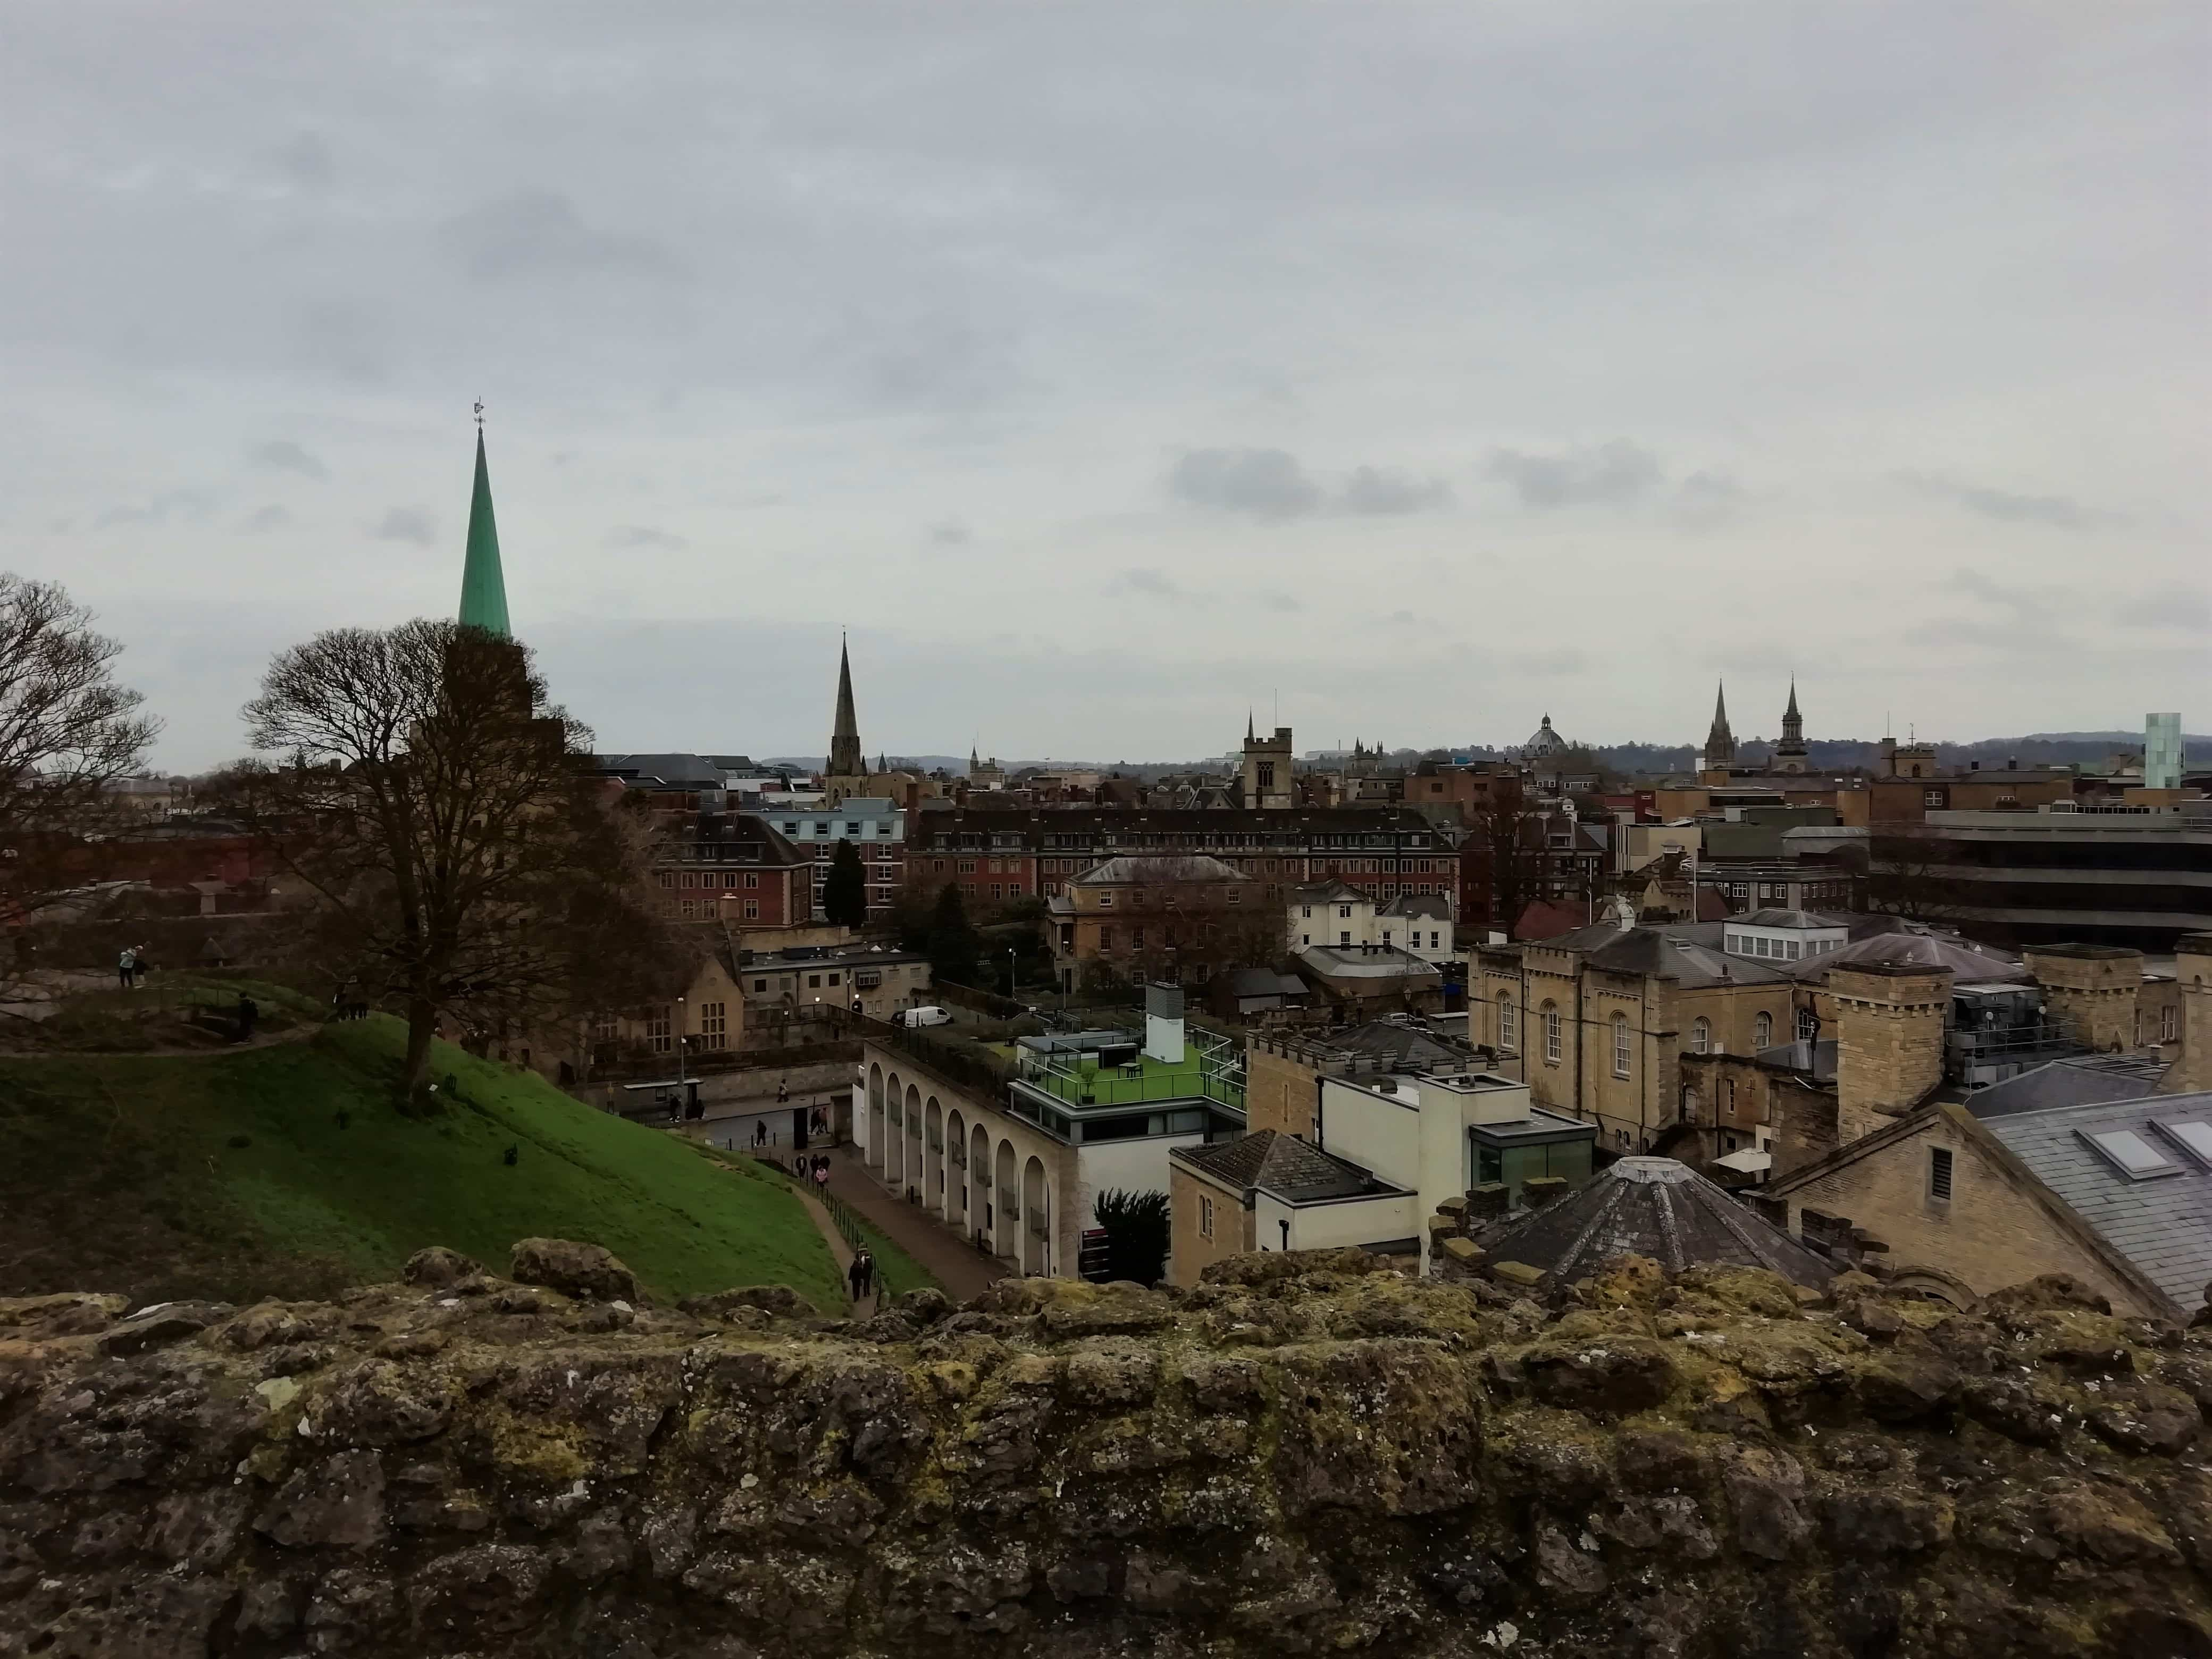 View over Oxford from the Castle Mound